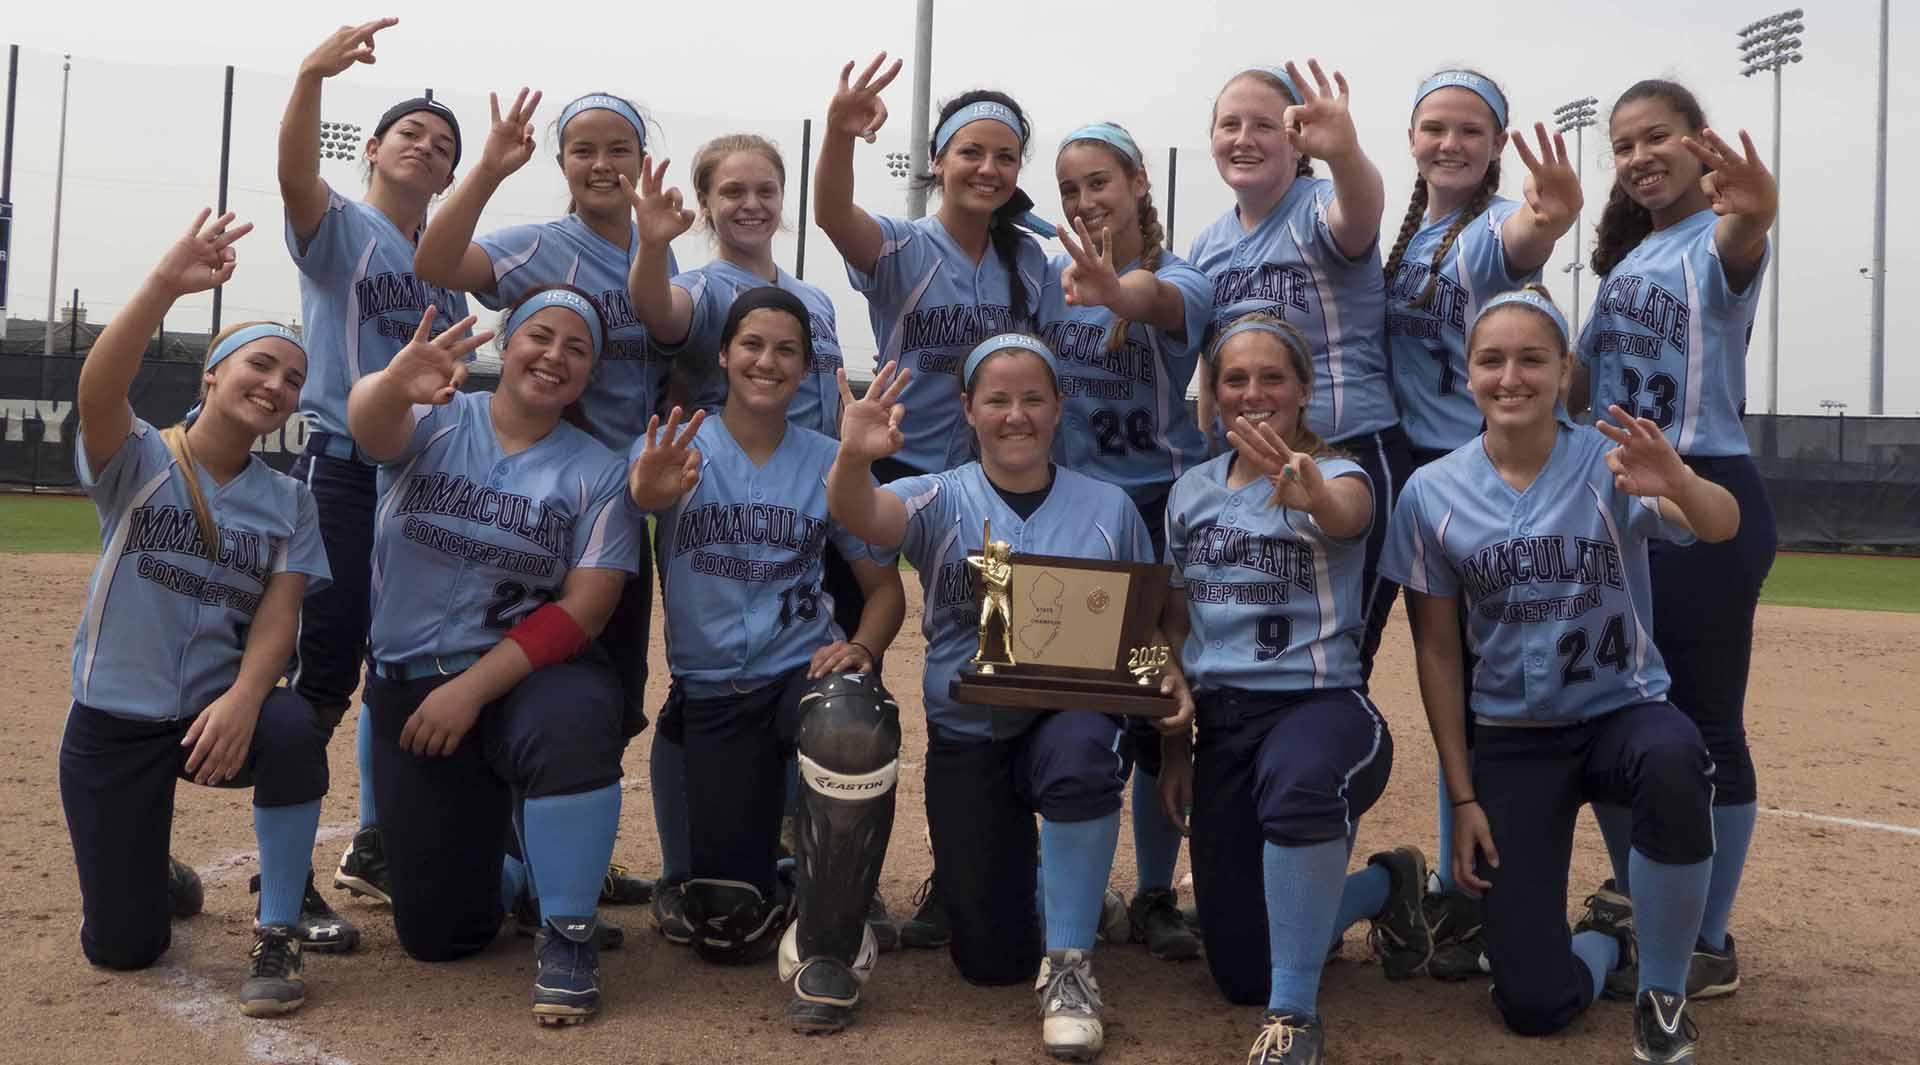 Campus Confidential: IC Immacualte Conception 2015 Softball